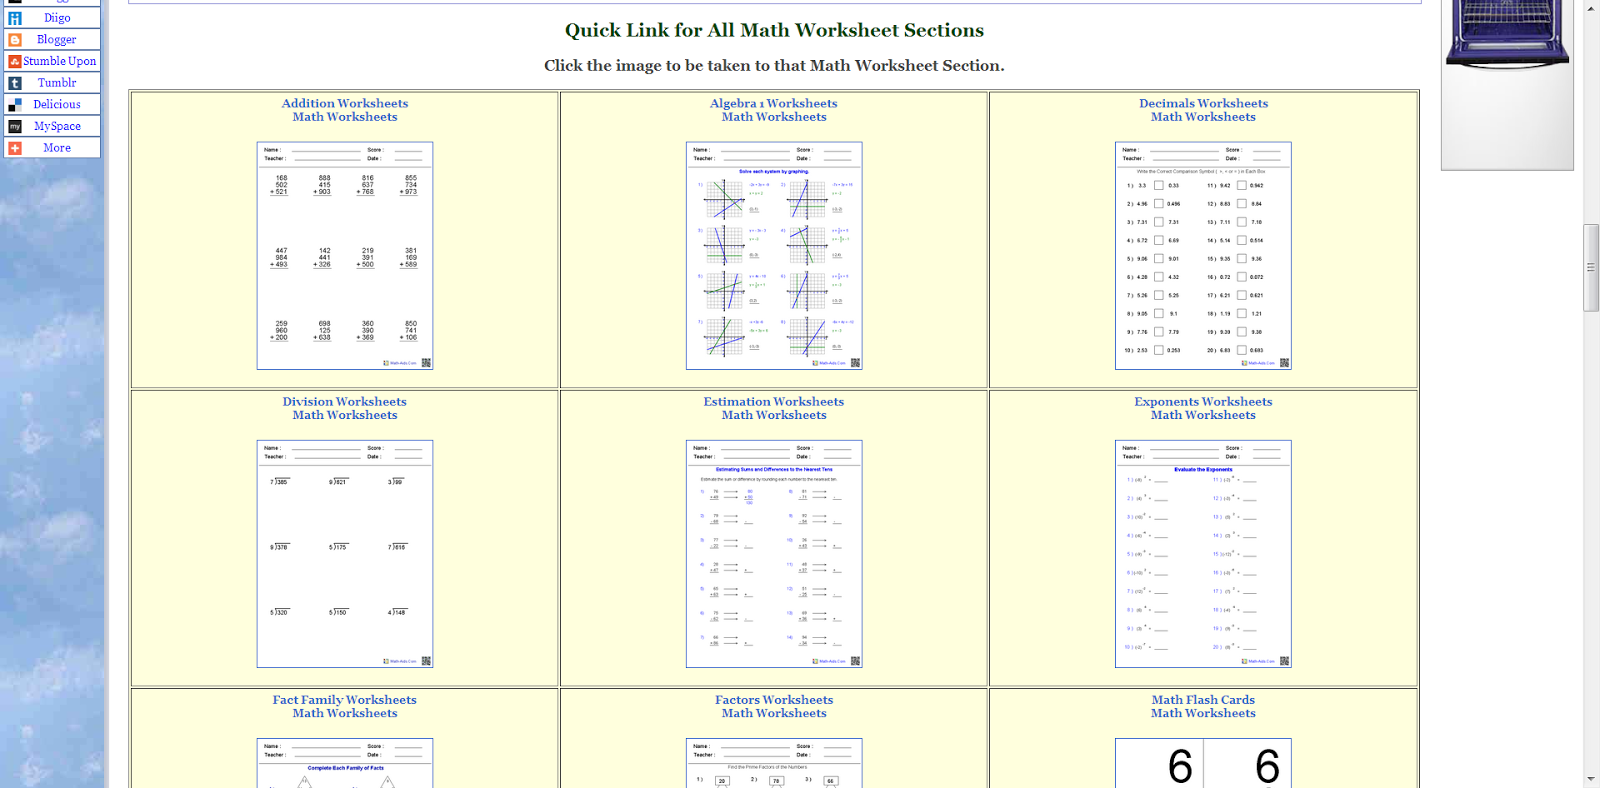 Learning Never Stops 56 great math websites for students of any age – Math in Focus Worksheets